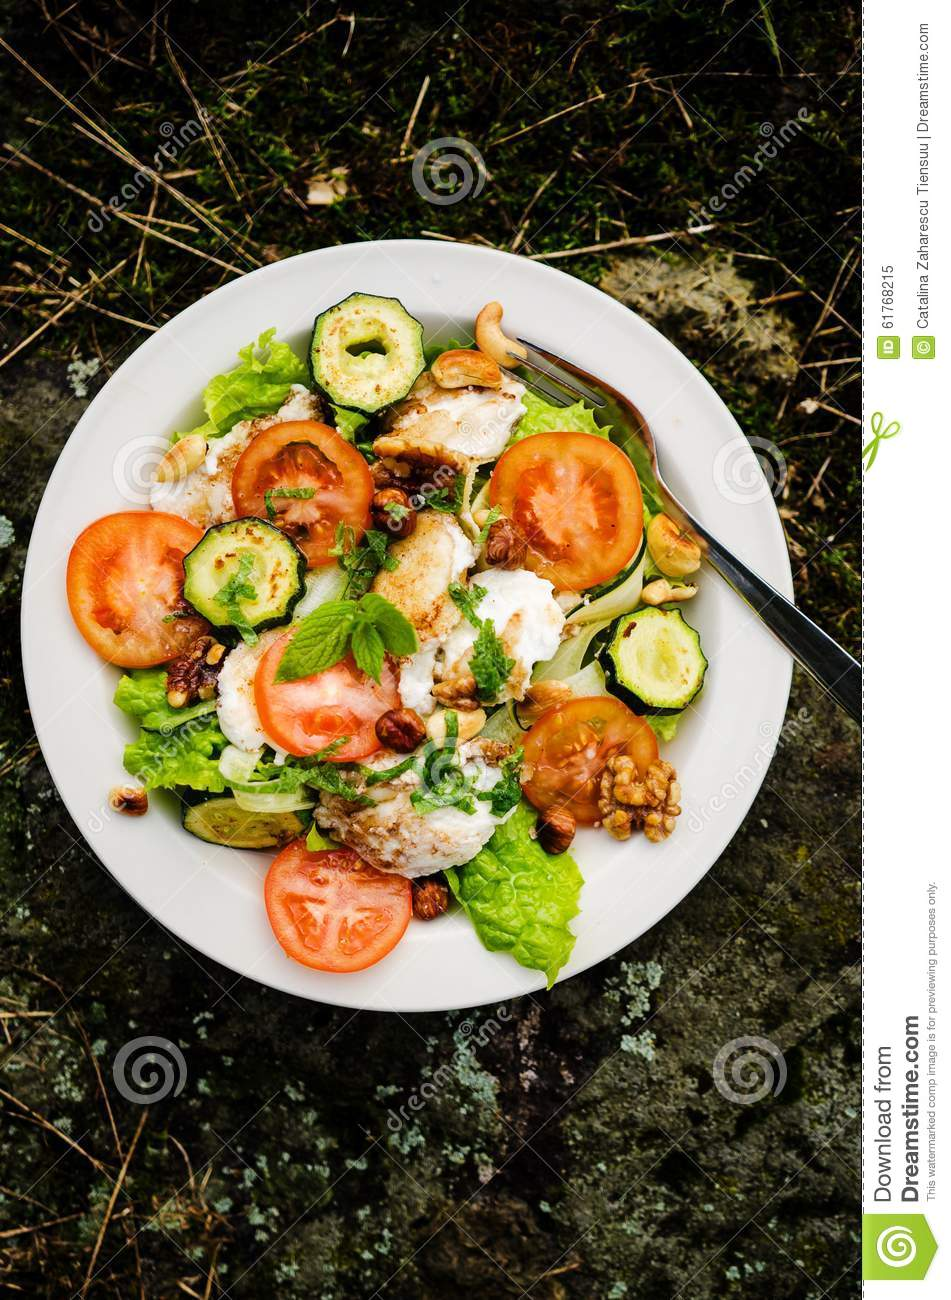 Mixed Salad With Goat Cheese And Roasted Vegetables Stock ...